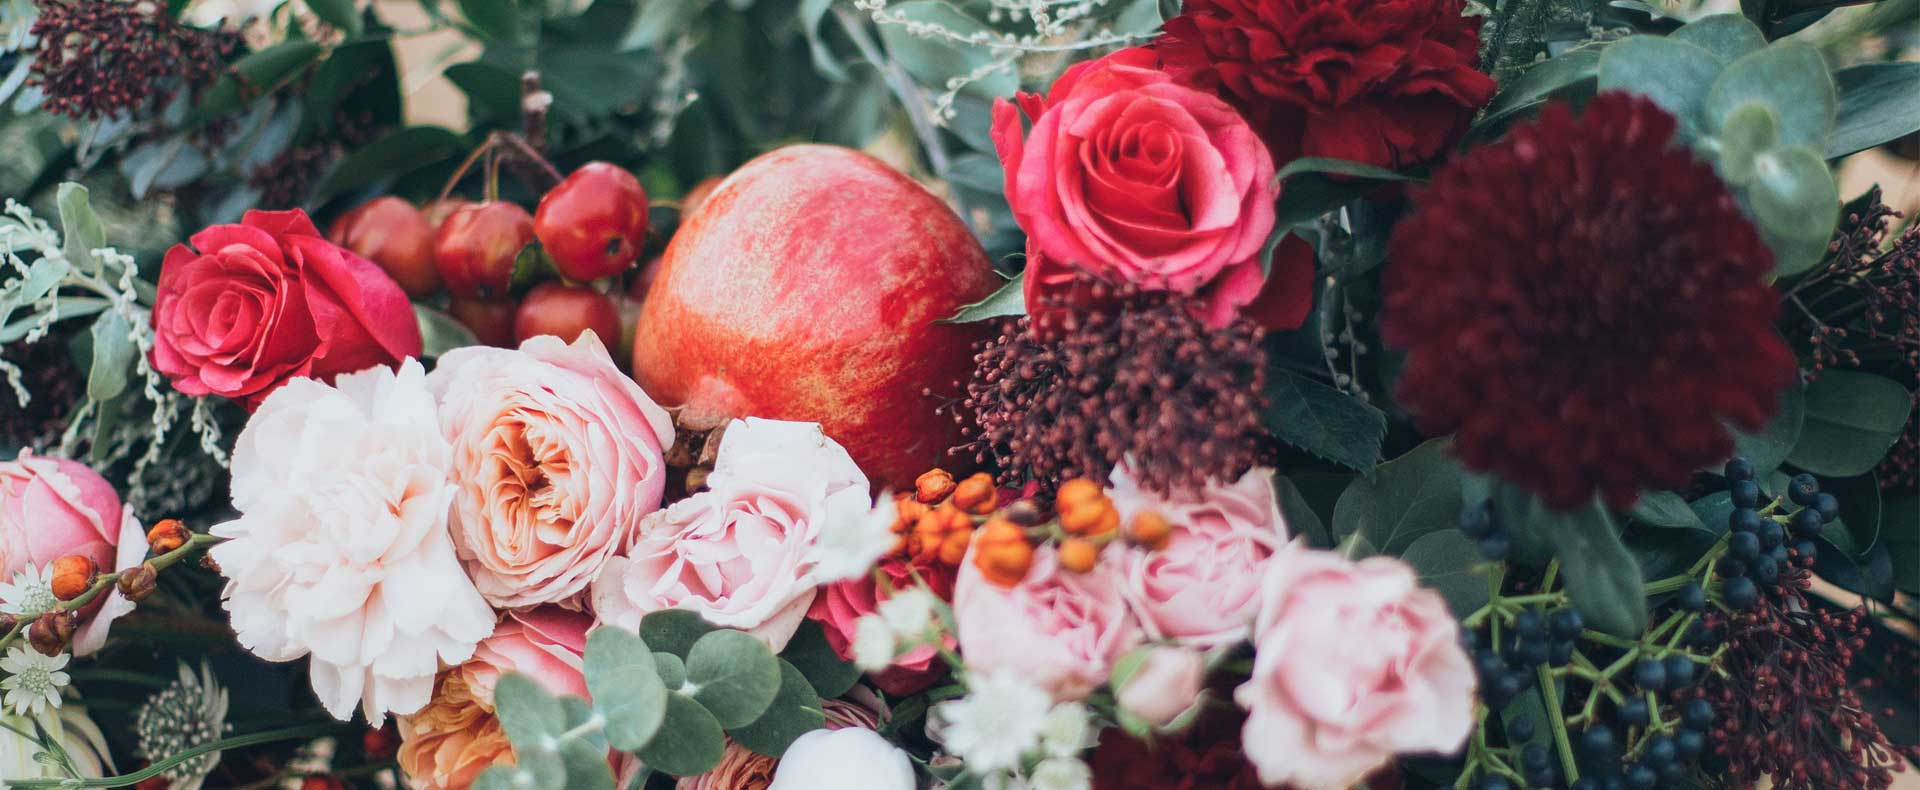 Flower Arranging Workshop | Winter